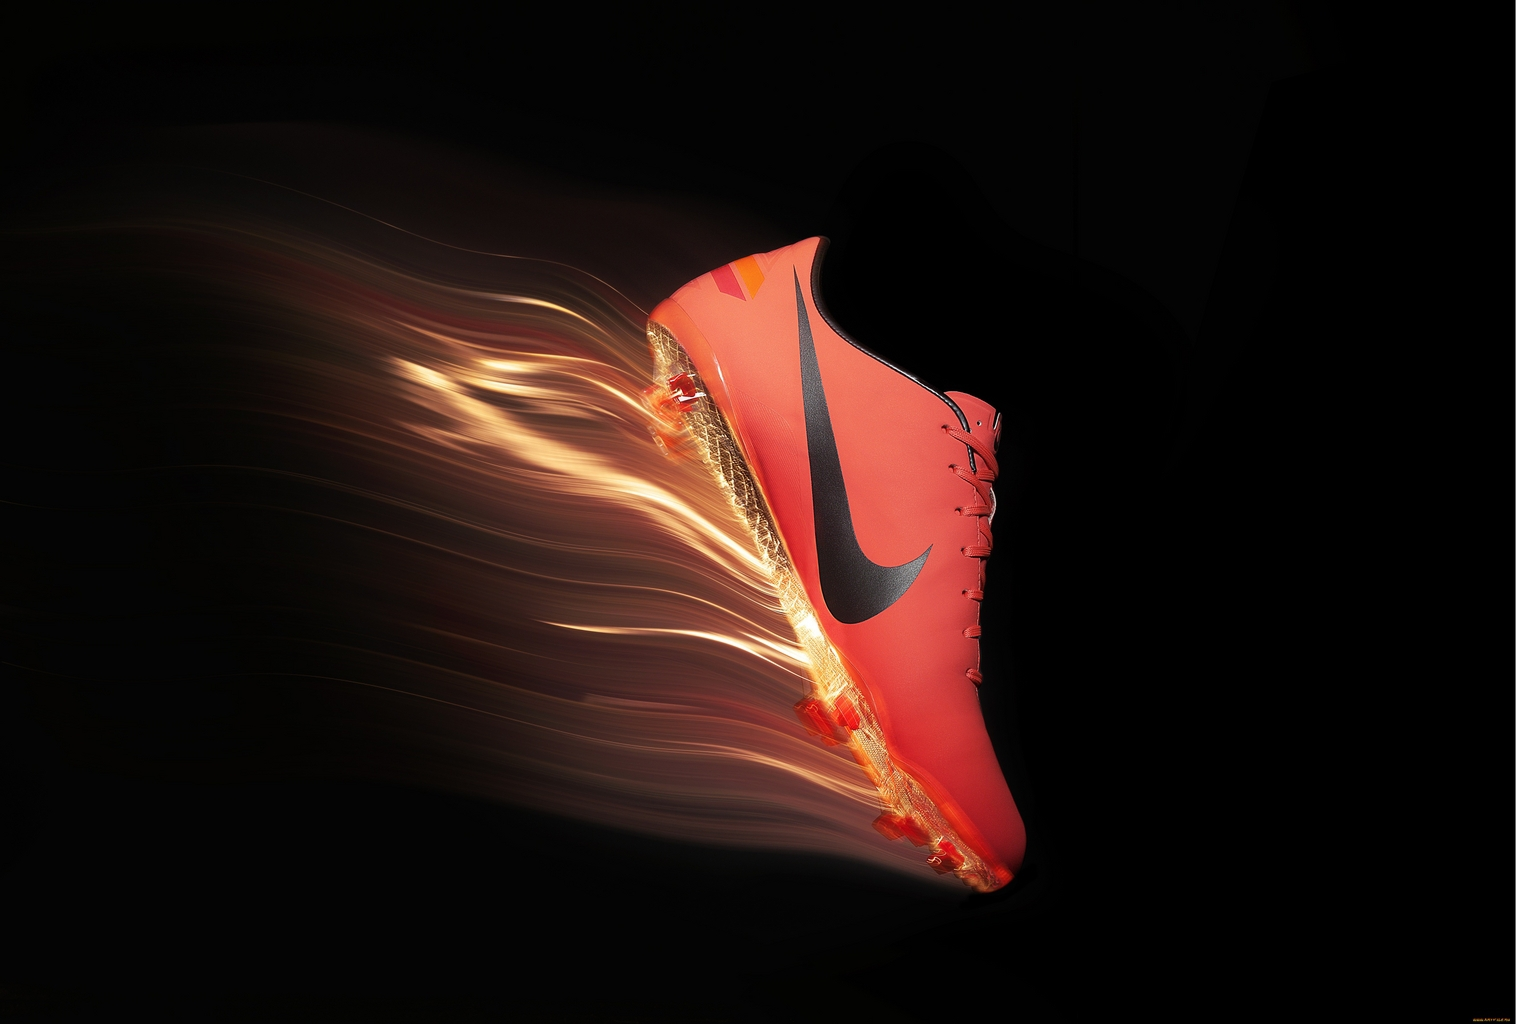 36417 download wallpaper Brands, Background, Nike screensavers and pictures for free